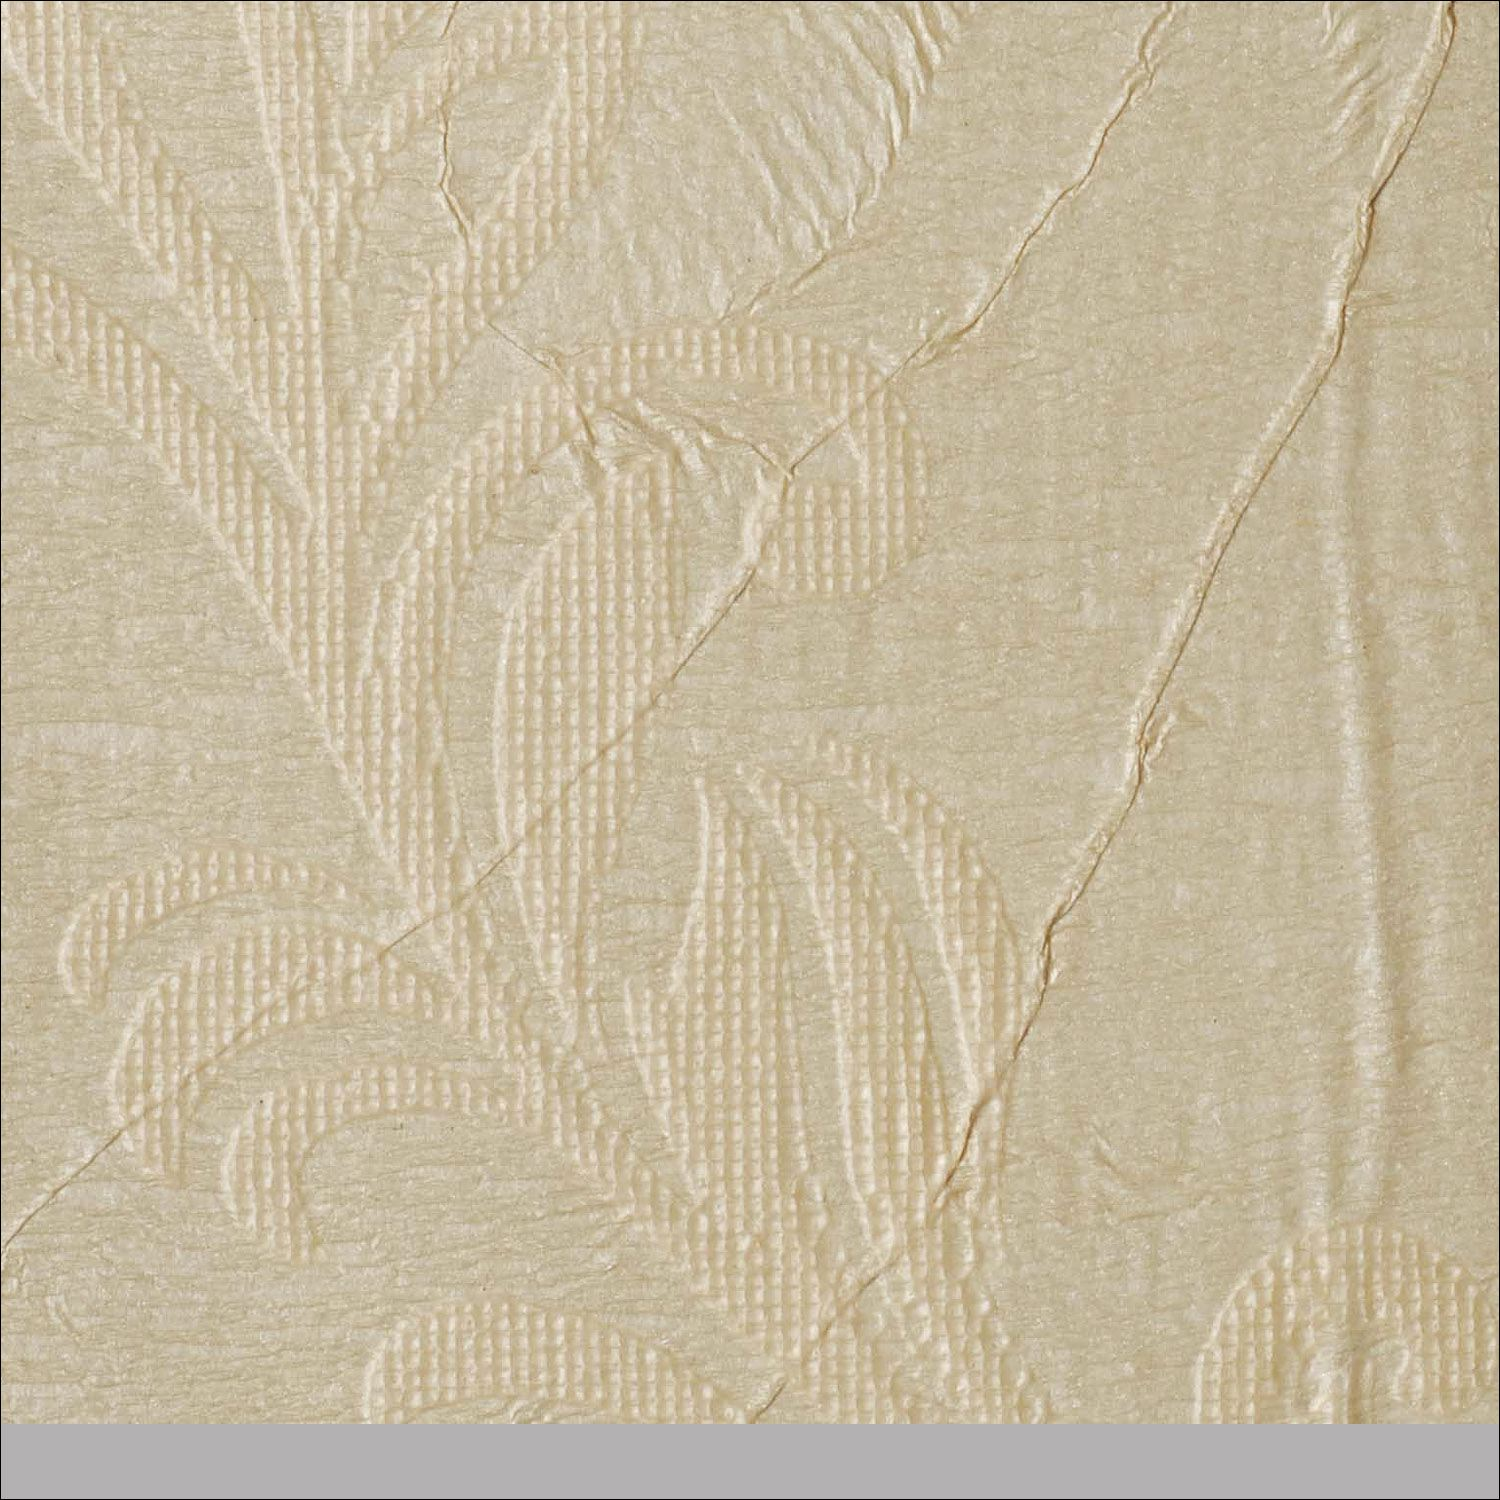 Dulce Hand Painted Wall Paper [DUL 9029] Designer Wallcoverings 1500x1500